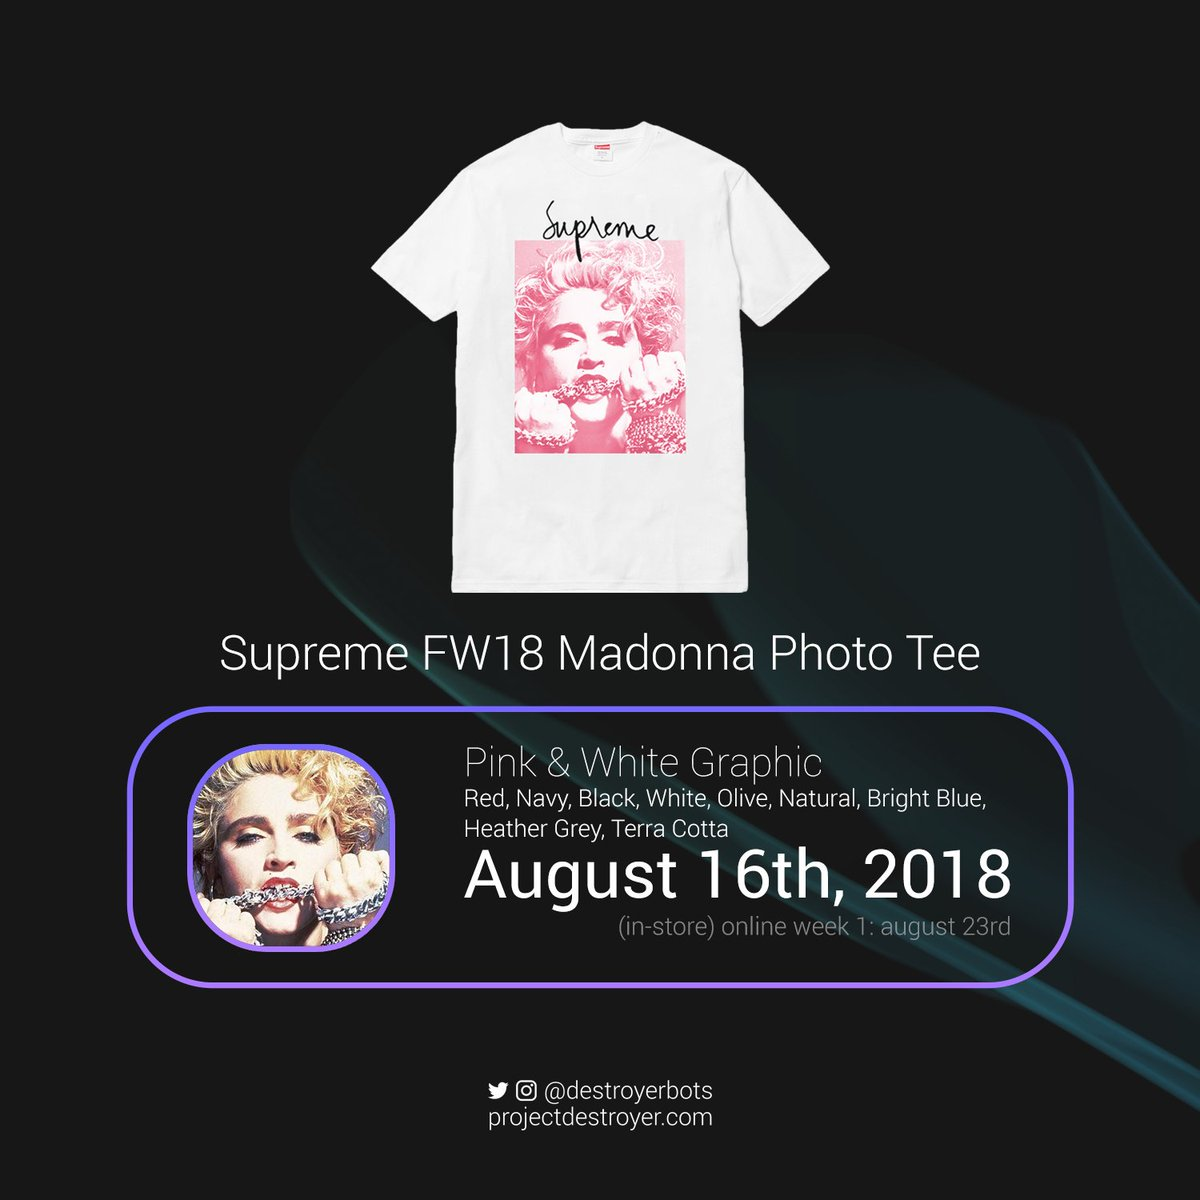 84cd9fe79 These same items will be releasing this Monday, August 20th at 11am EST.  What are you guys most hyped for? Personally I need that Madonna tee ASAP.